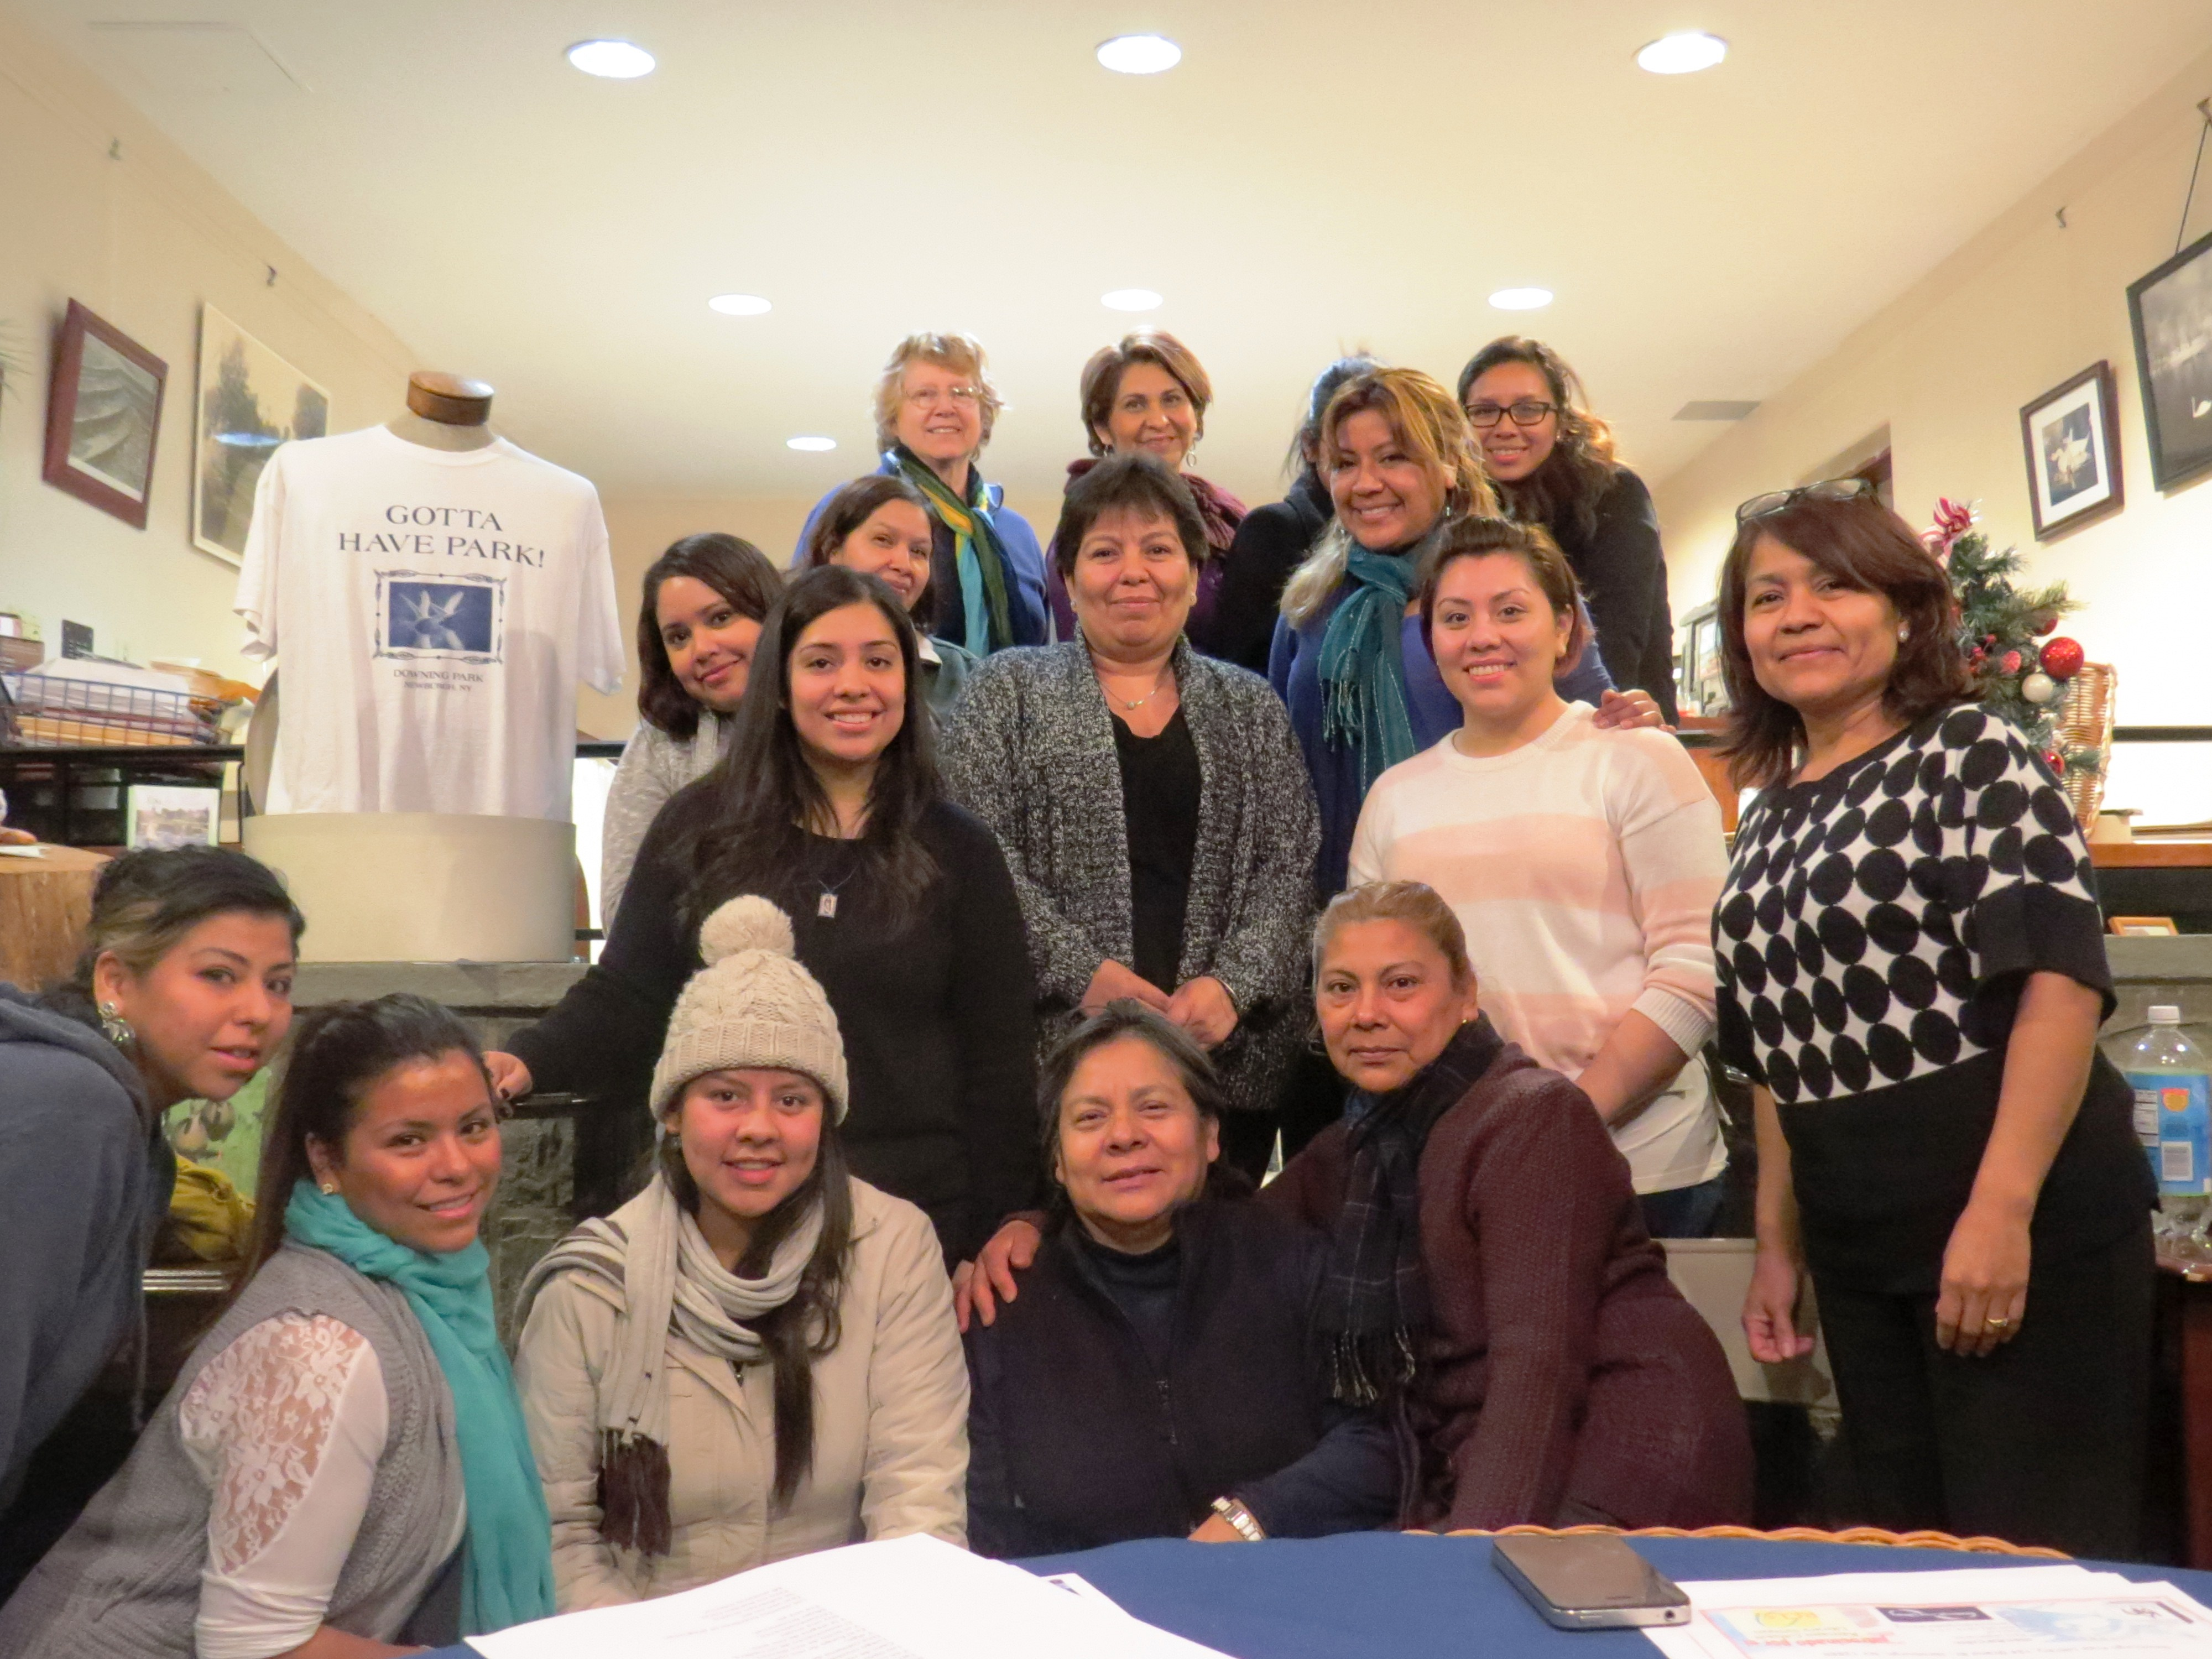 Women who attended the first meeting of the Hudson Valley Latina Women Group. Double this amount attended their second meeting!